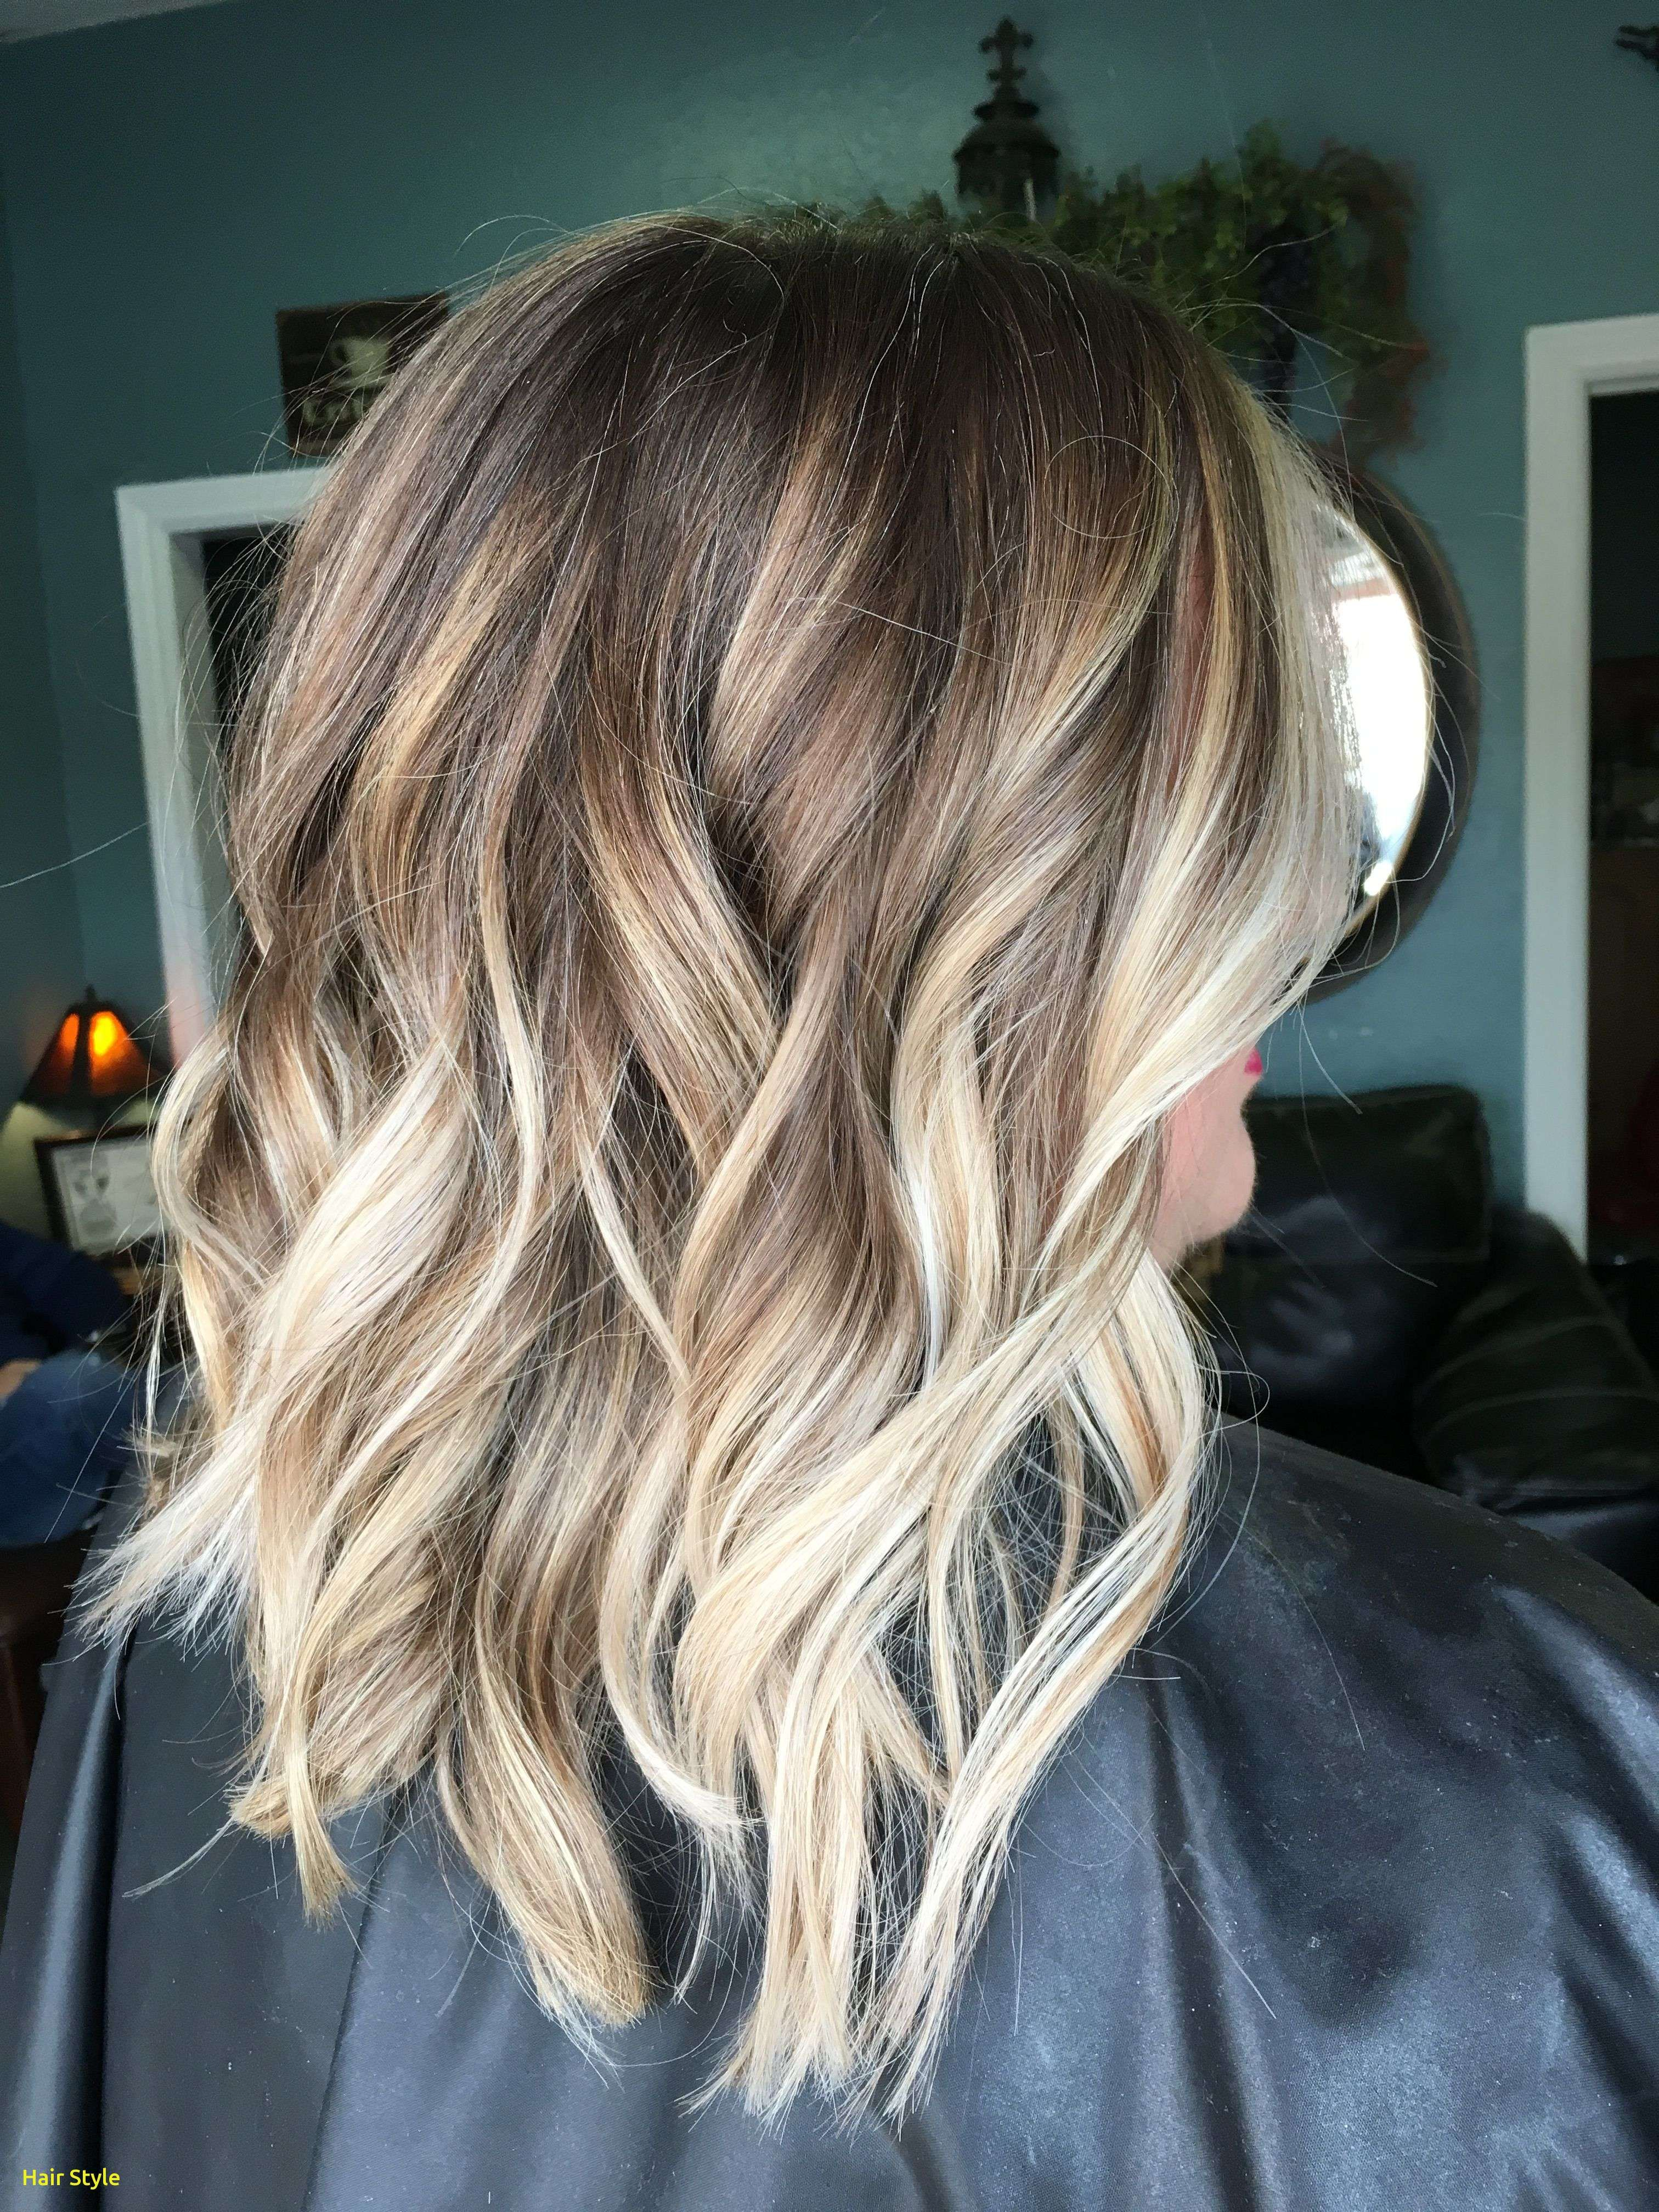 Fresh long layered haircut with balayage color – new hairstyles styles 2019